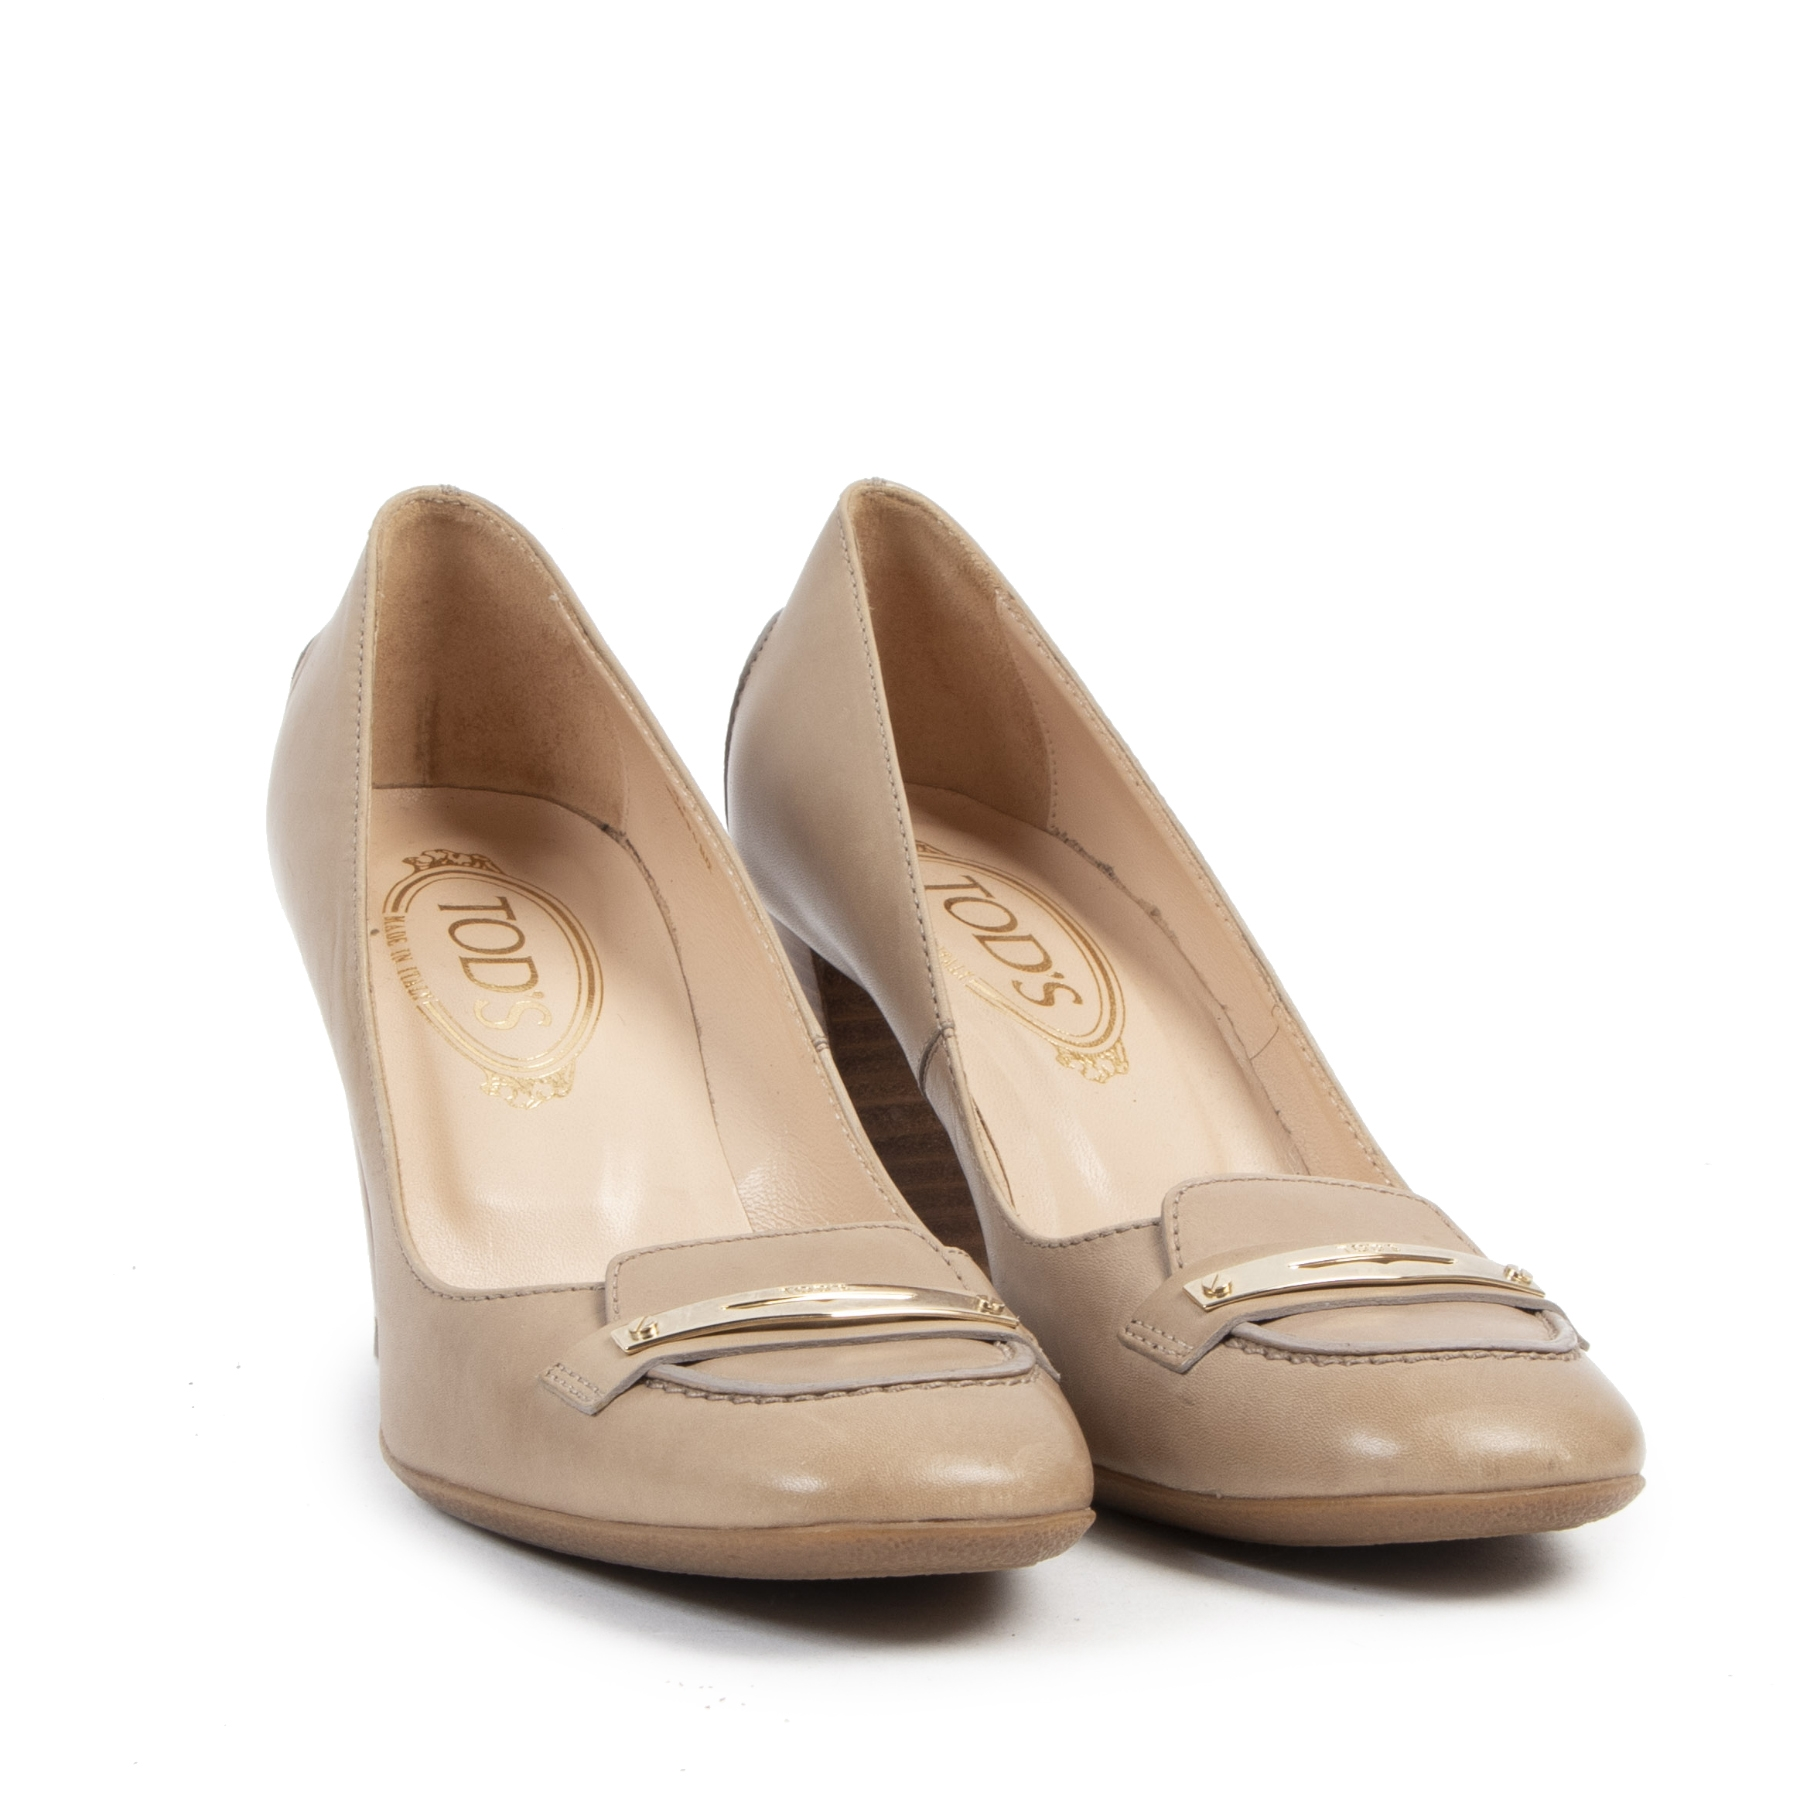 Authentieke tweedehands vintage Tod's Beige Loafer Pumps - Size 37 koop online webshop LabelLOV